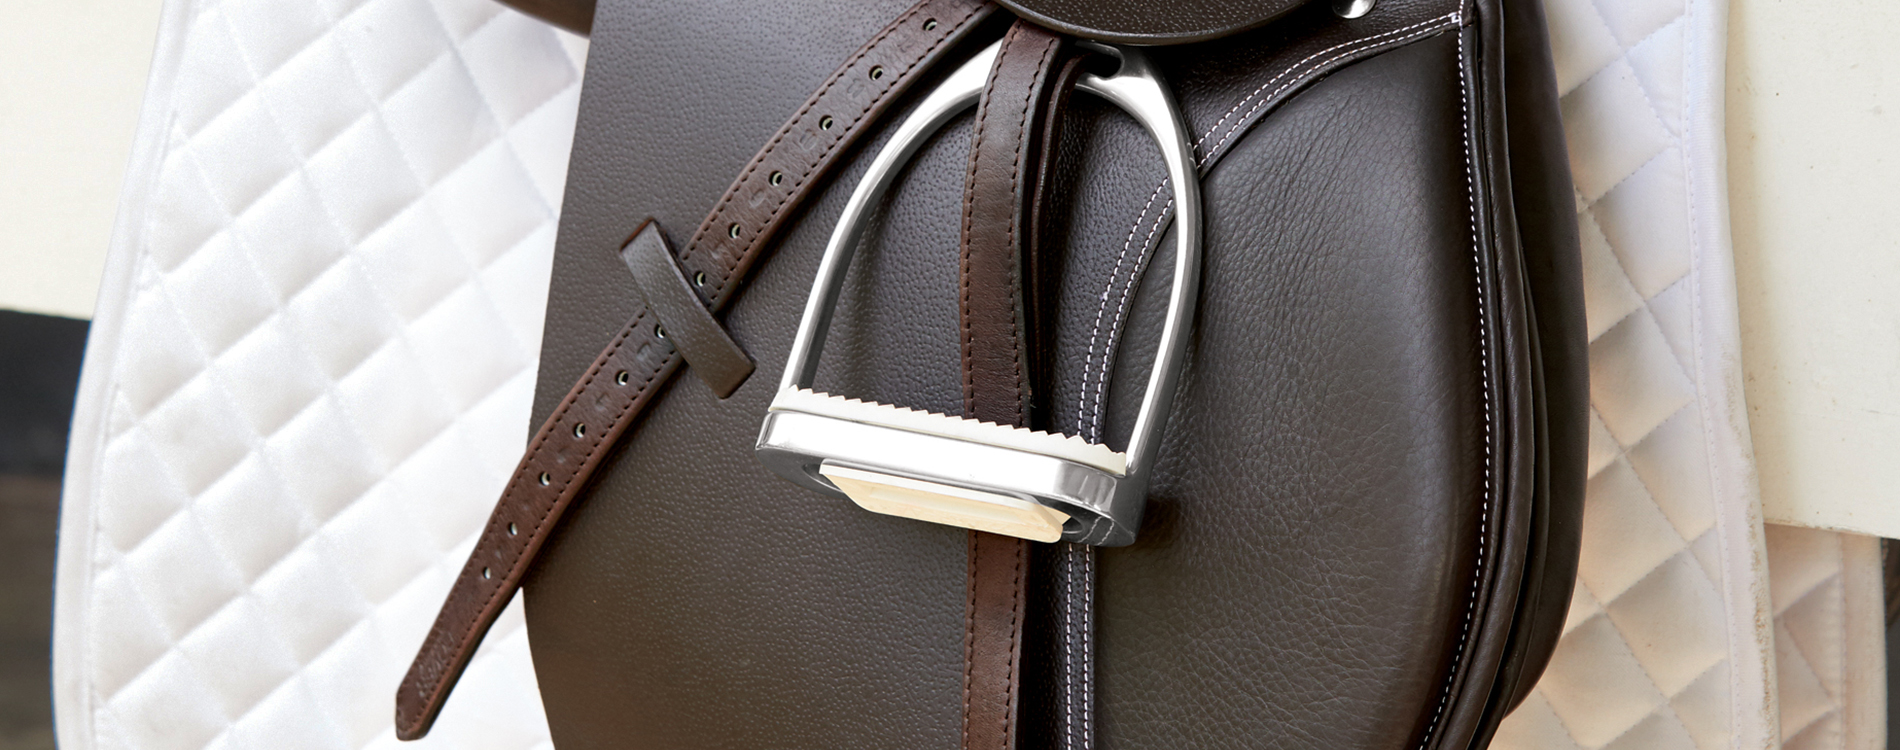 """CHILD/'S STIRRUP LEATHERS for ENGLISH Saddle  Brown 3//4/"""" X 48/"""" NEW"""